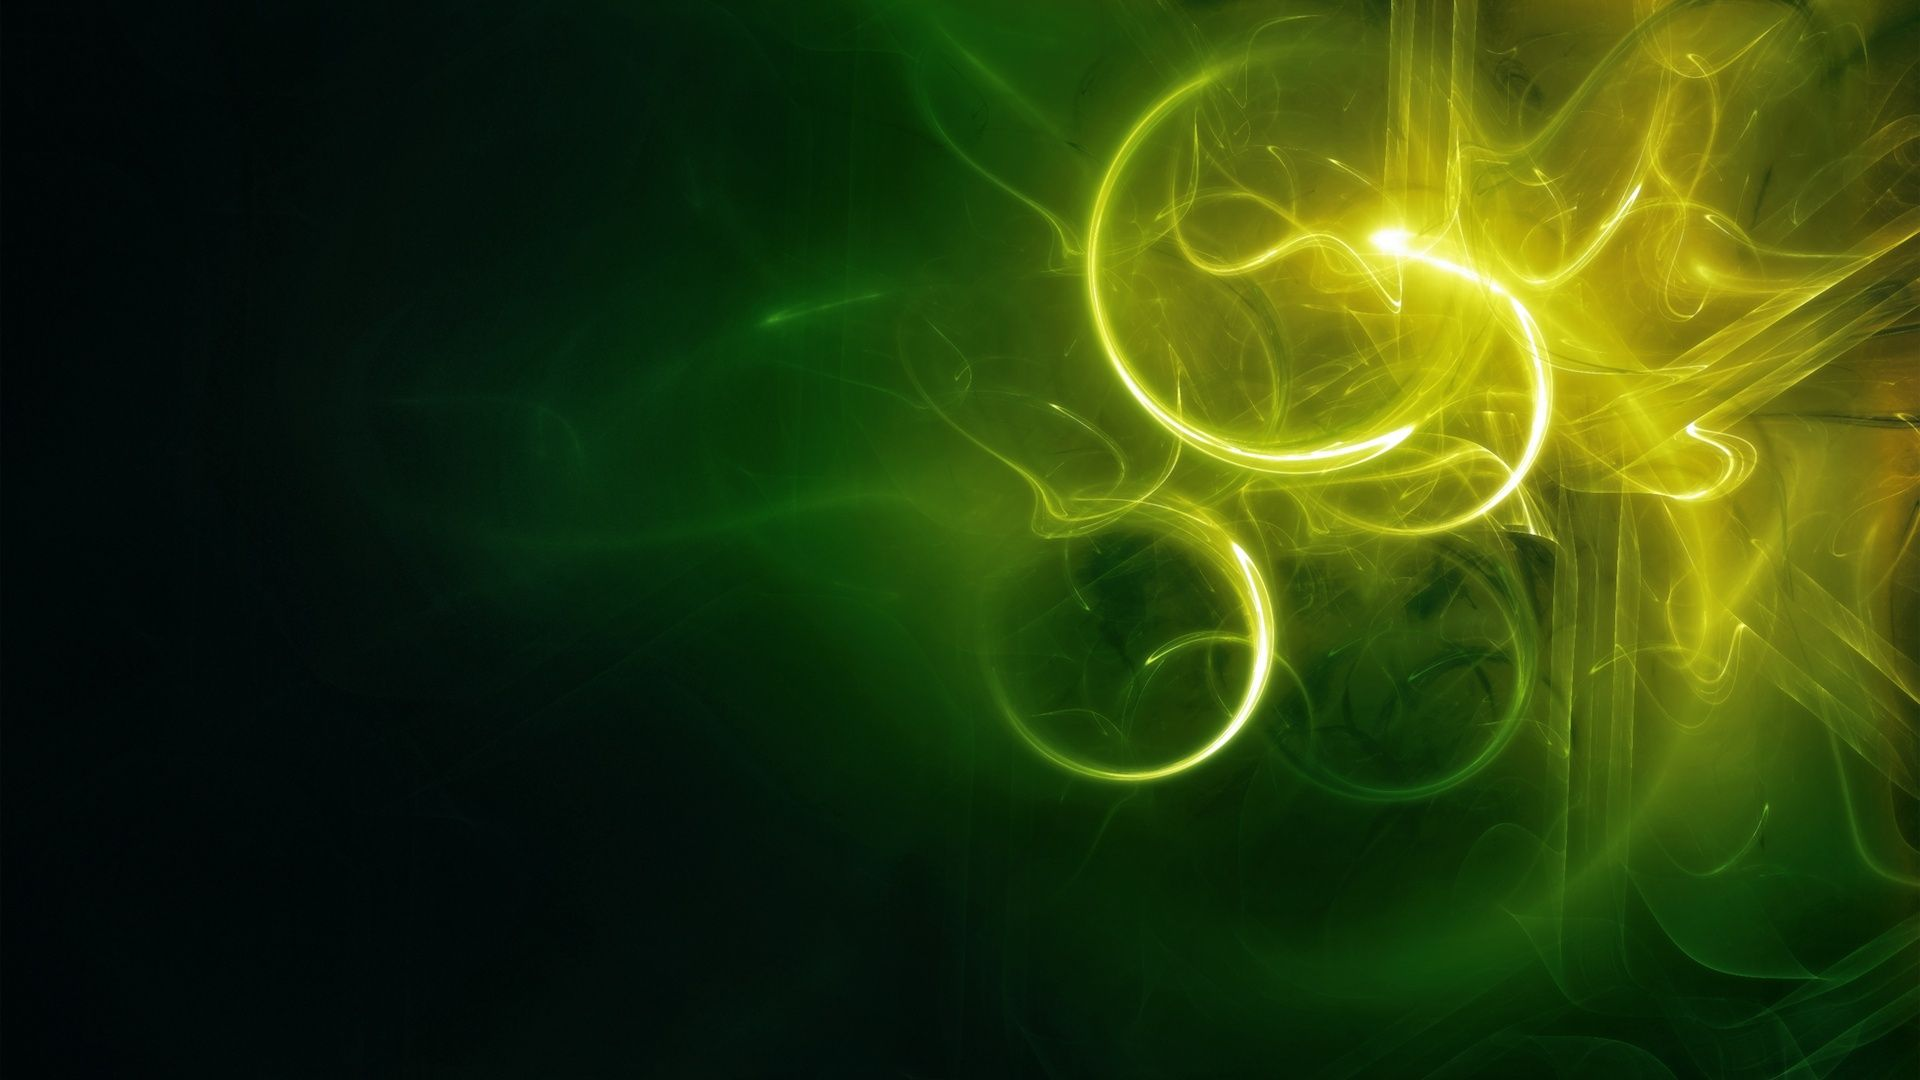 Green Abstract Desktop Wallpapers Top Free Green Abstract